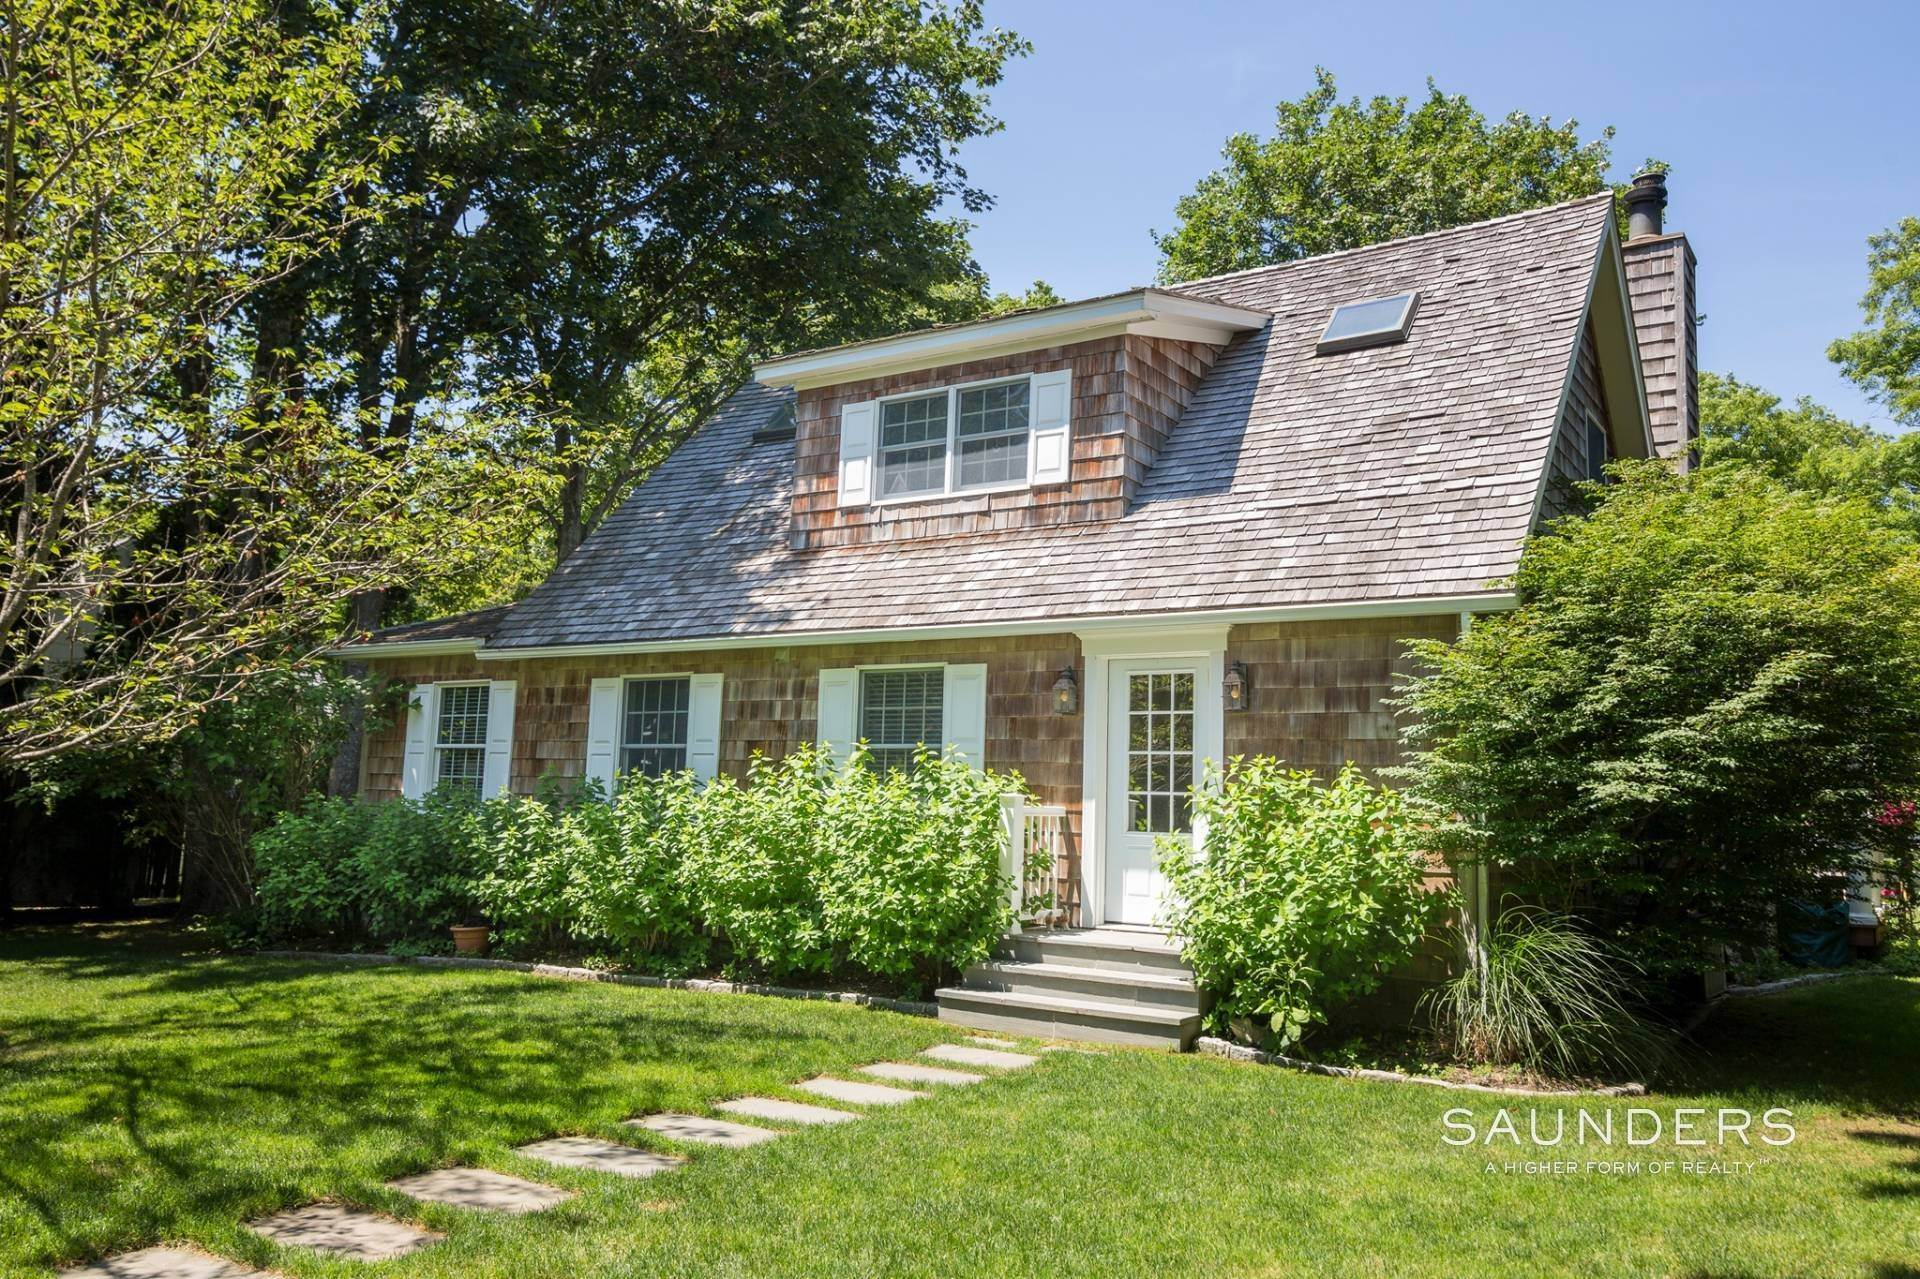 2. Single Family Homes for Sale at Once Upon A Time, In East Hampton Village... 156 Montauk Highway, East Hampton, East Hampton Town, NY 11937